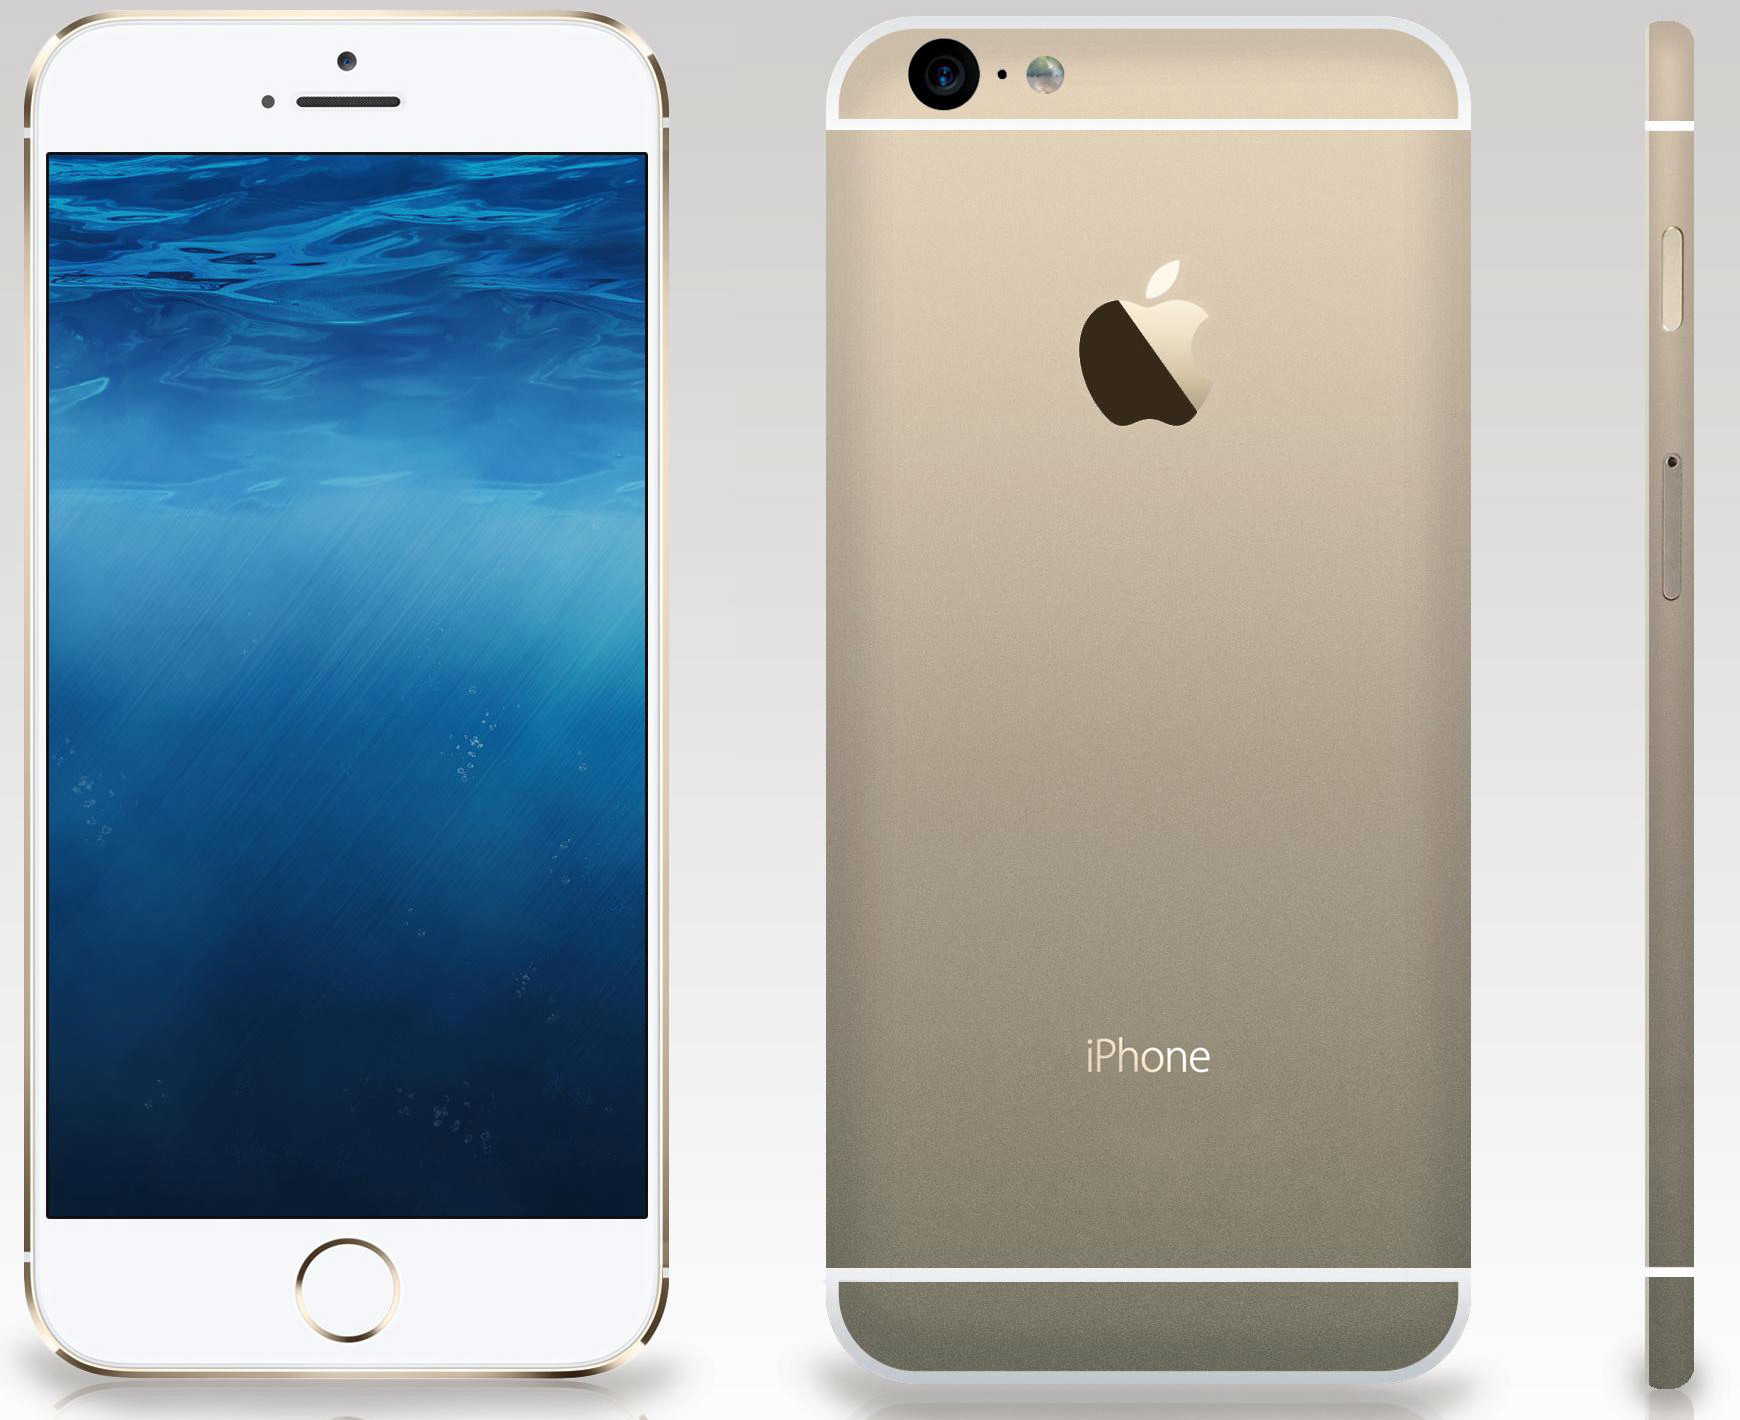 apple iphone 6 a1586 128gb specs and price phonegg. Black Bedroom Furniture Sets. Home Design Ideas